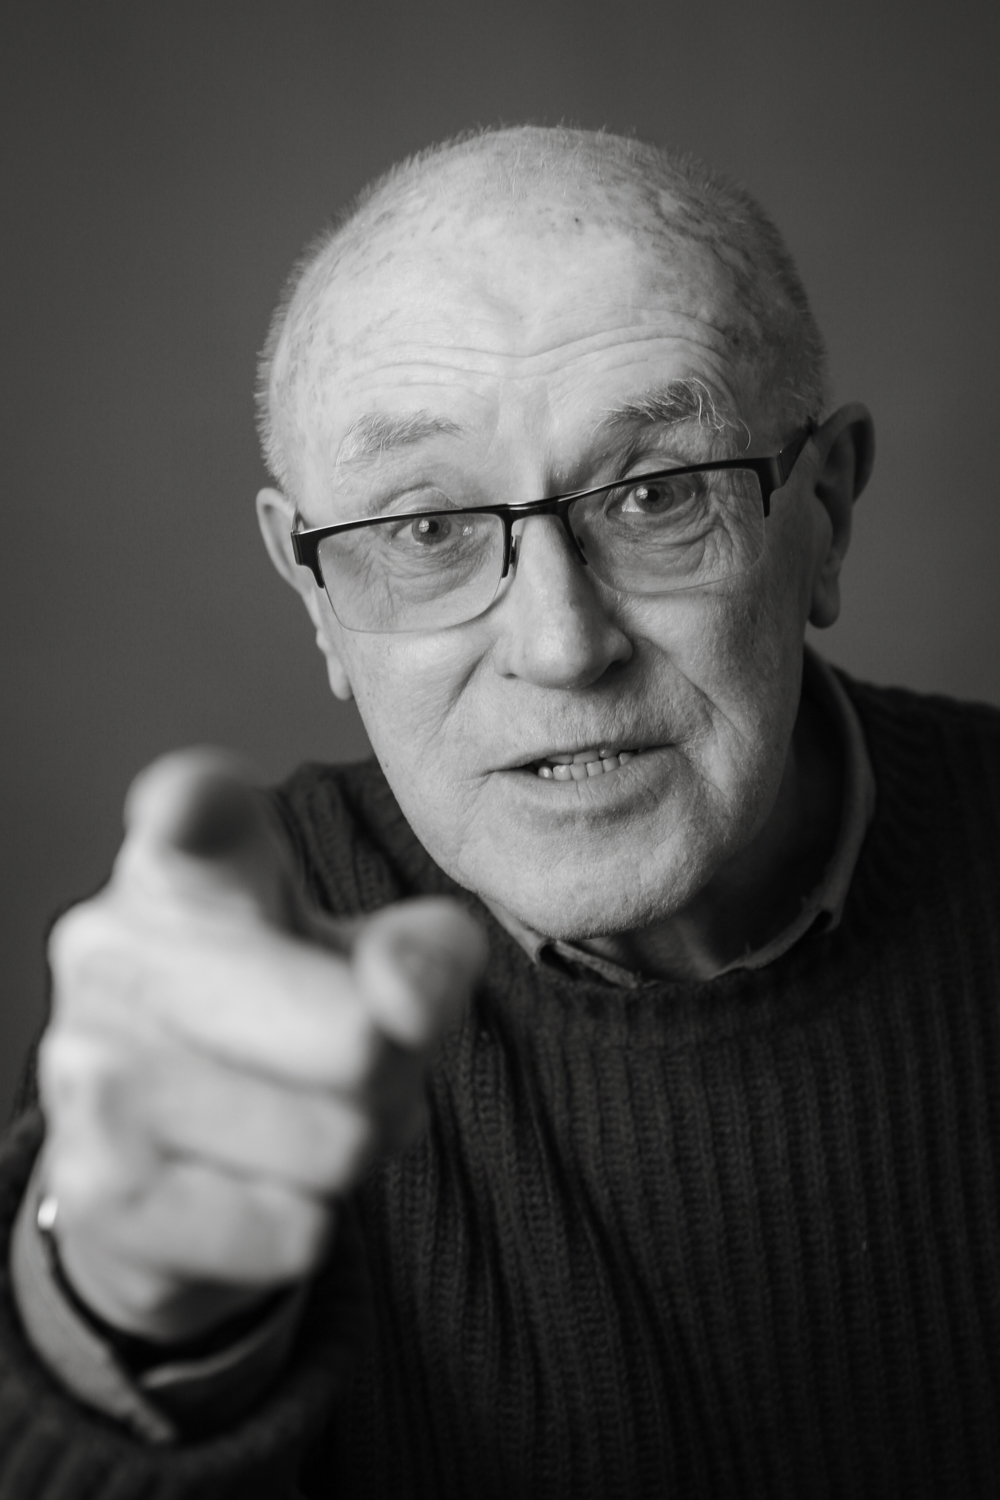 MALTINGS-BOARD-MEMBERS-BERWICK-PICTORIAL-PHOTOGRAPHY-STUDIO-HEAD-SHOTS-PROFILE-FUNNY-HUMOUR-ACTING-CREATIVE-5935.jpg